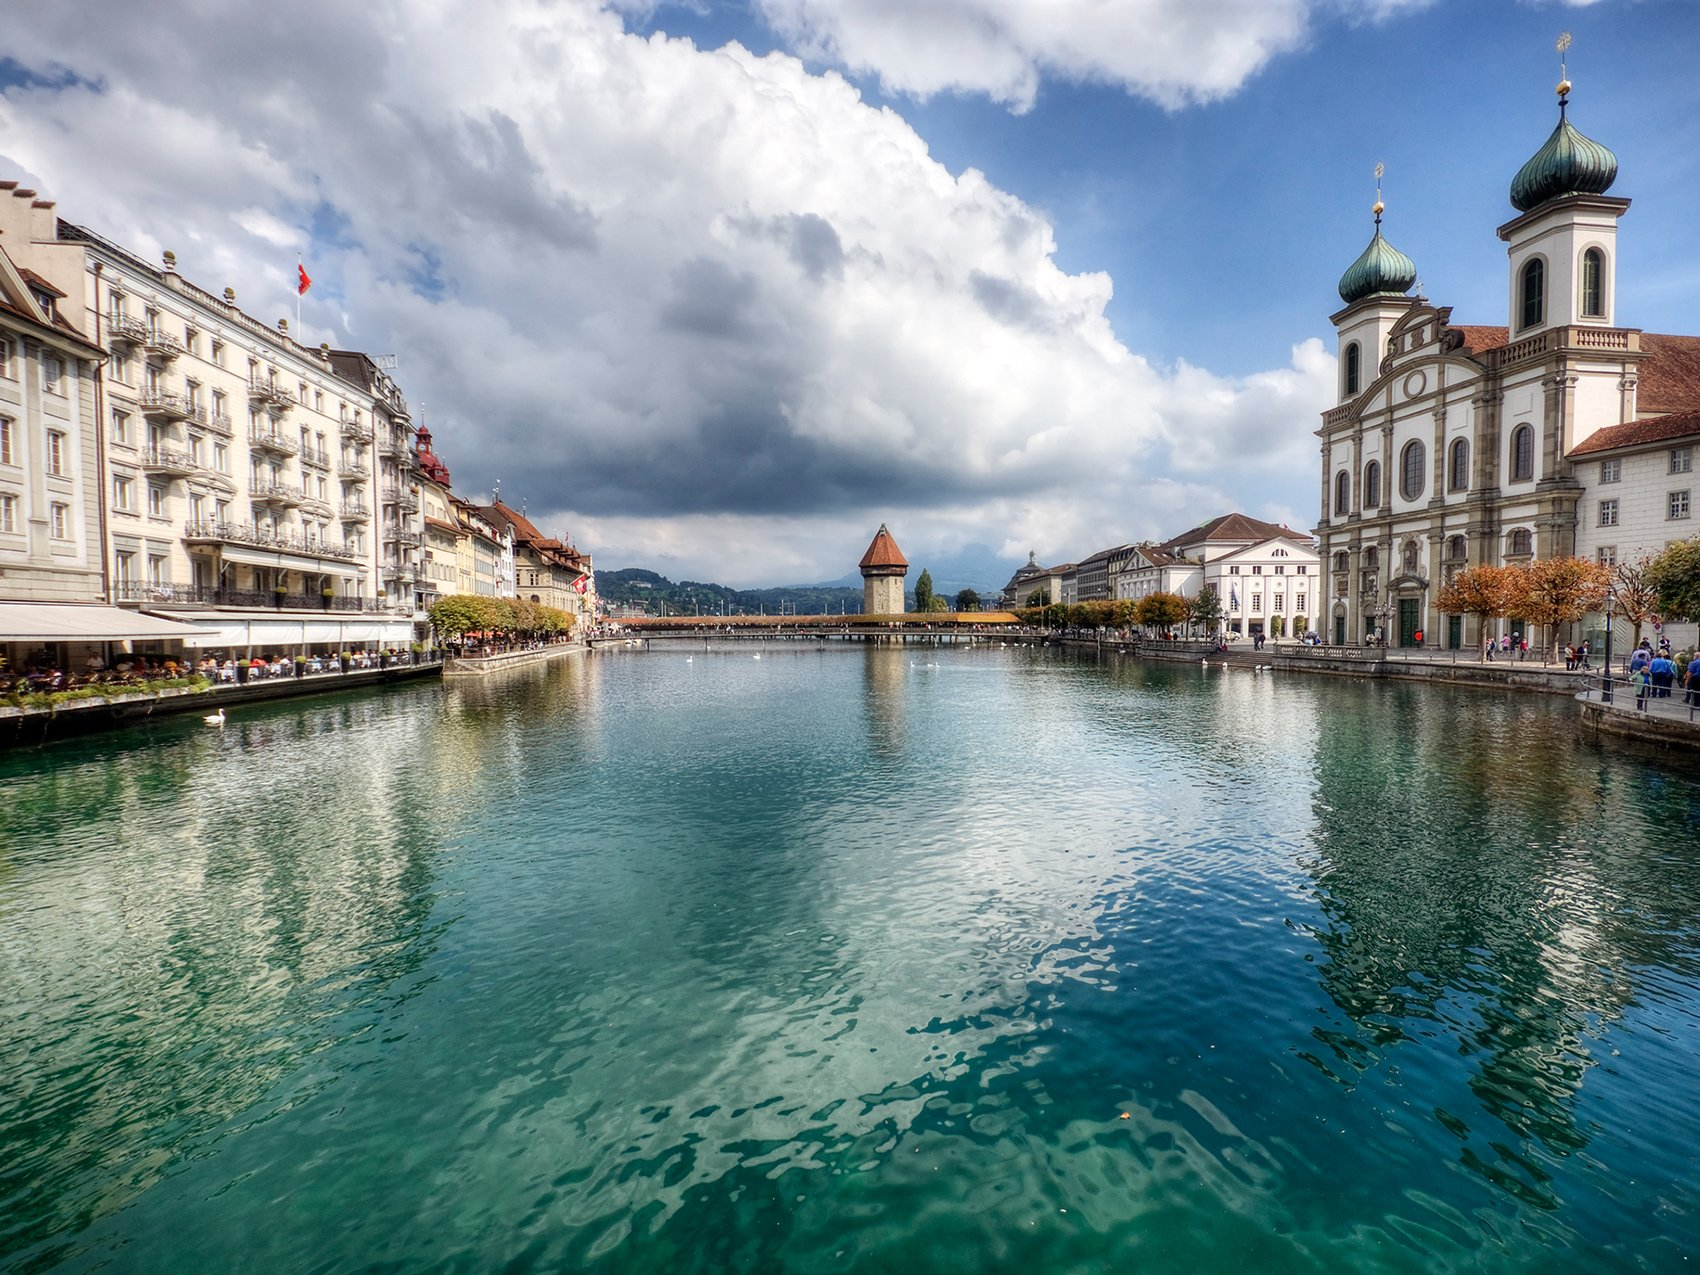 Hotel weisses kreuz boutique hotel luzern for Design boutique hotels schweiz